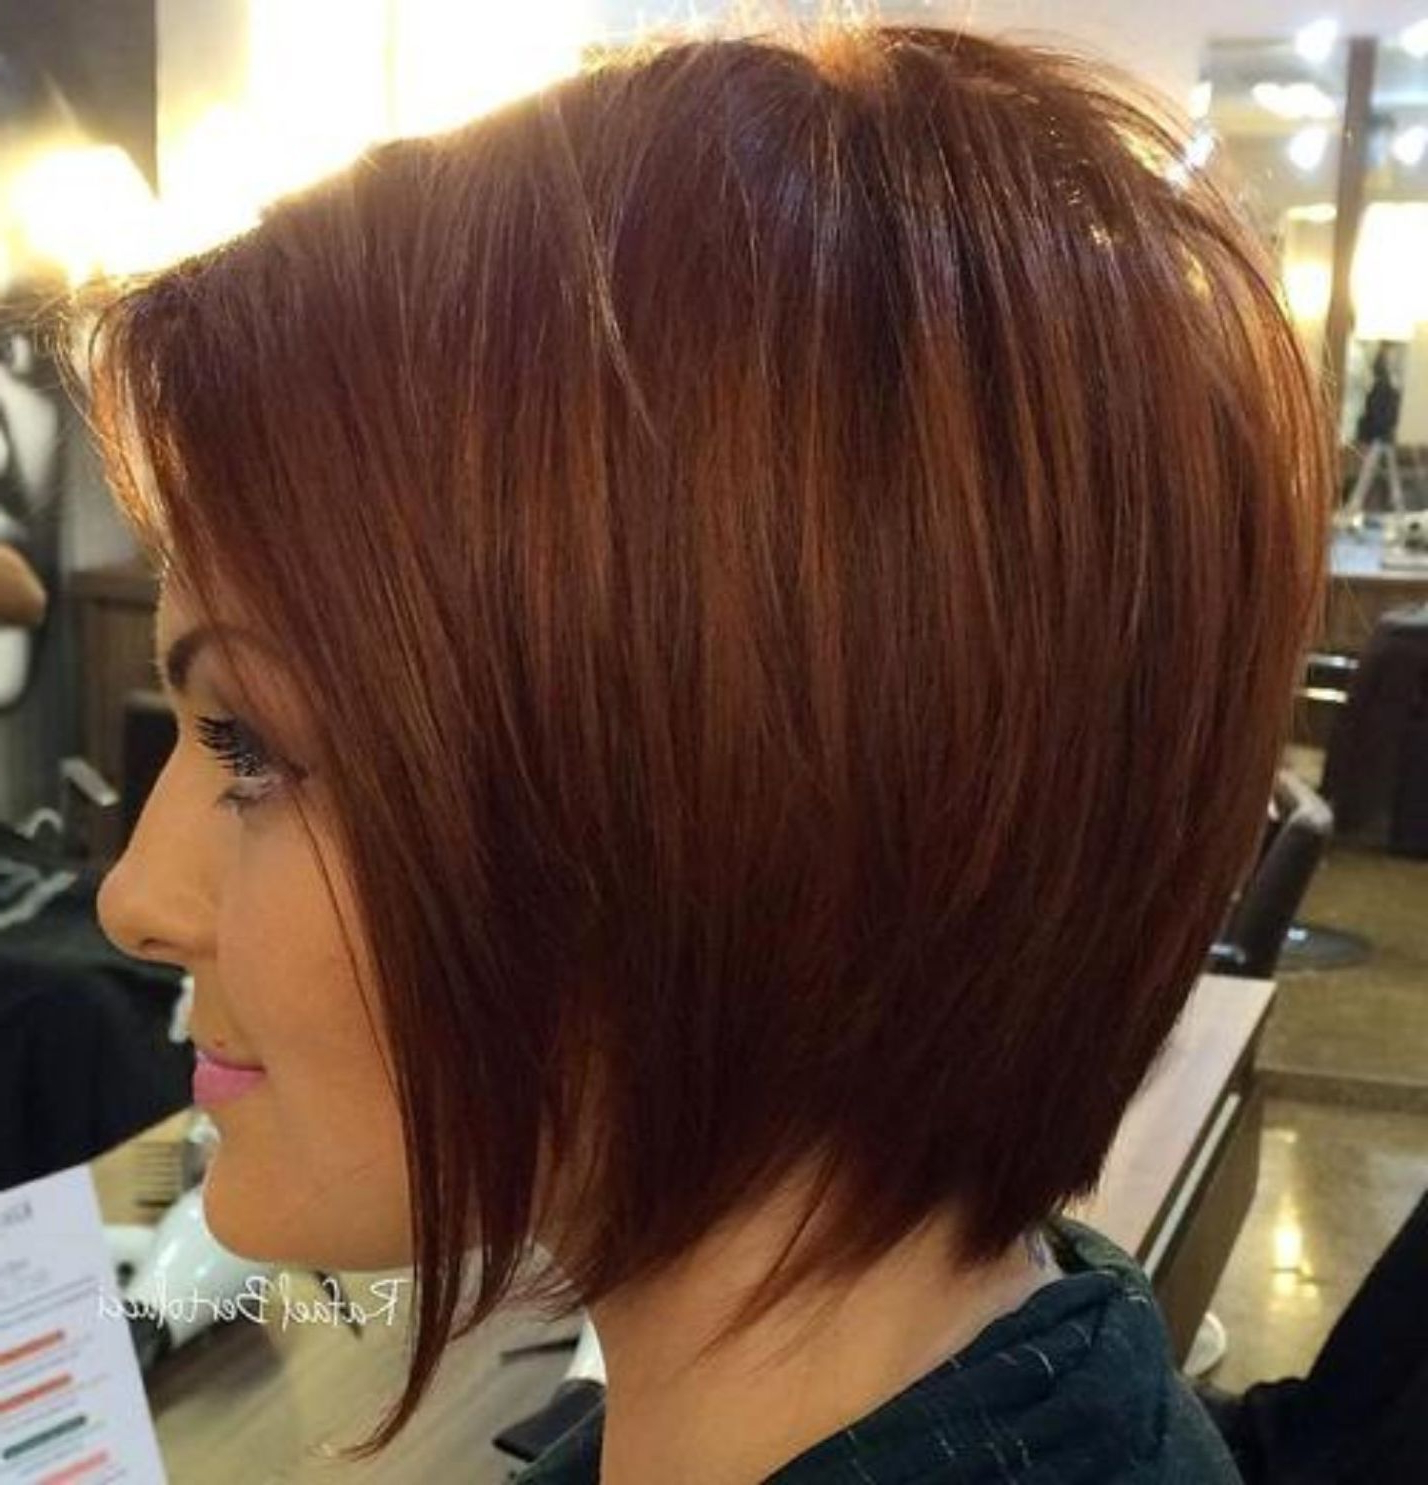 60 Beautiful And Convenient Medium Bob Hairstyles In 2019 With Tapered Shaggy Chocolate Brown Bob Hairstyles (View 10 of 20)